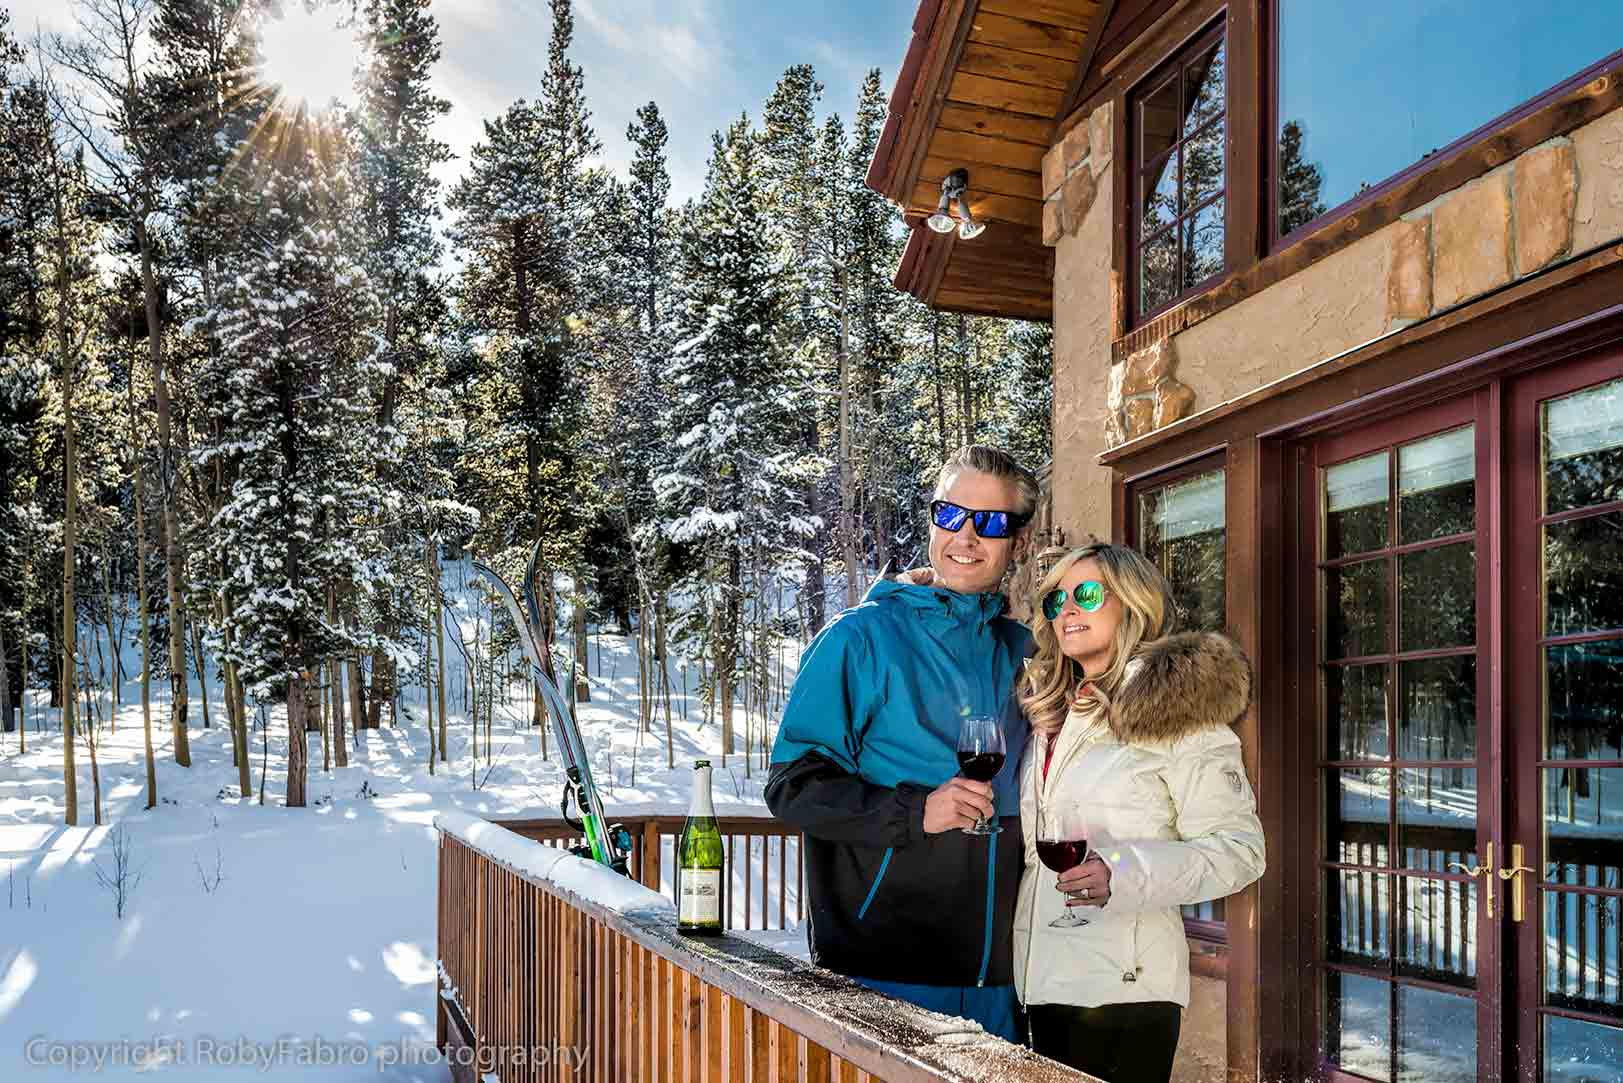 Relaxing with a glass of wine. Breckenridge, Colorado. Lifestyle photography